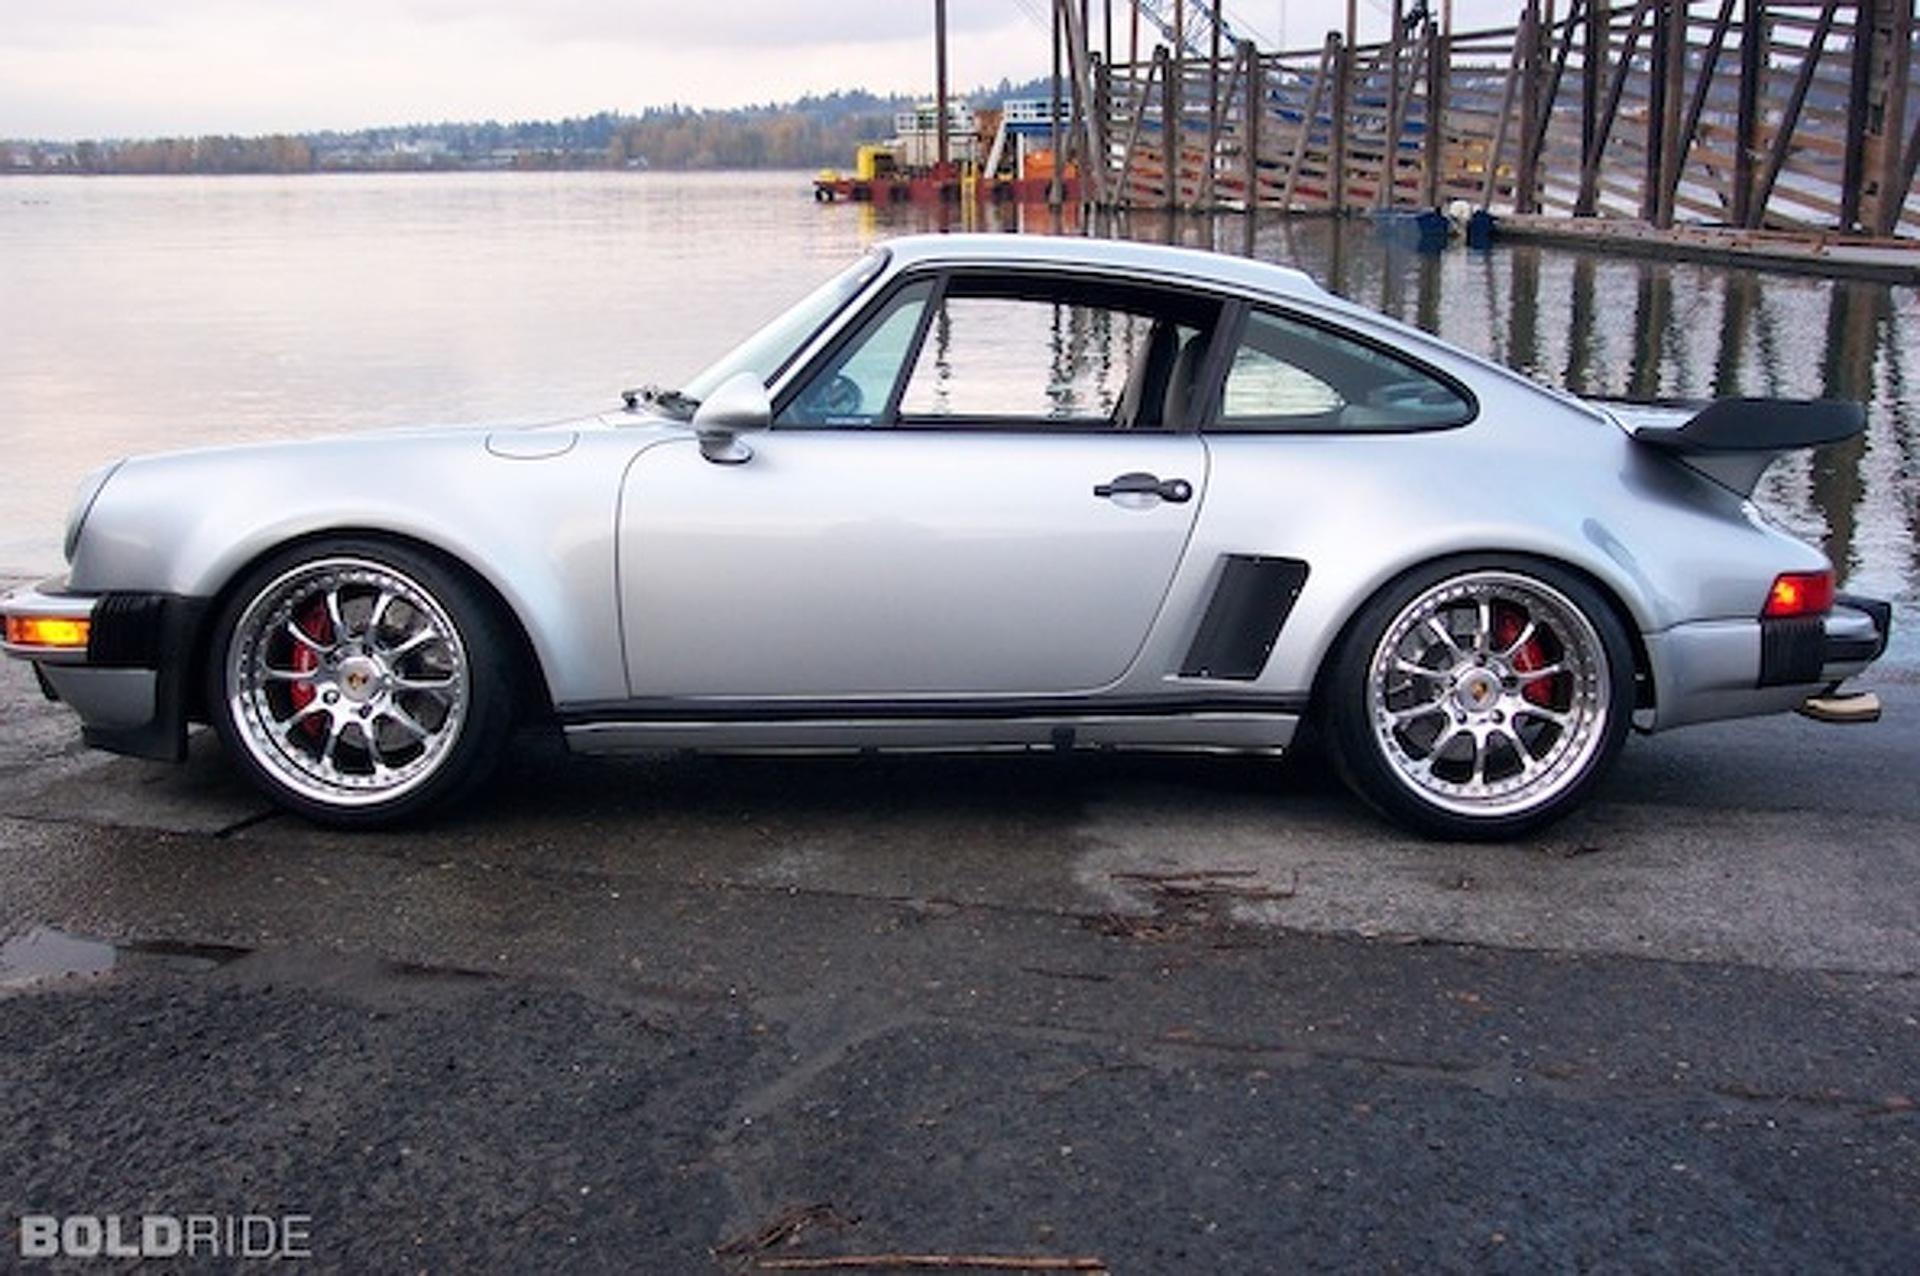 Your Ride: 1986 Porsche 911 Turbo